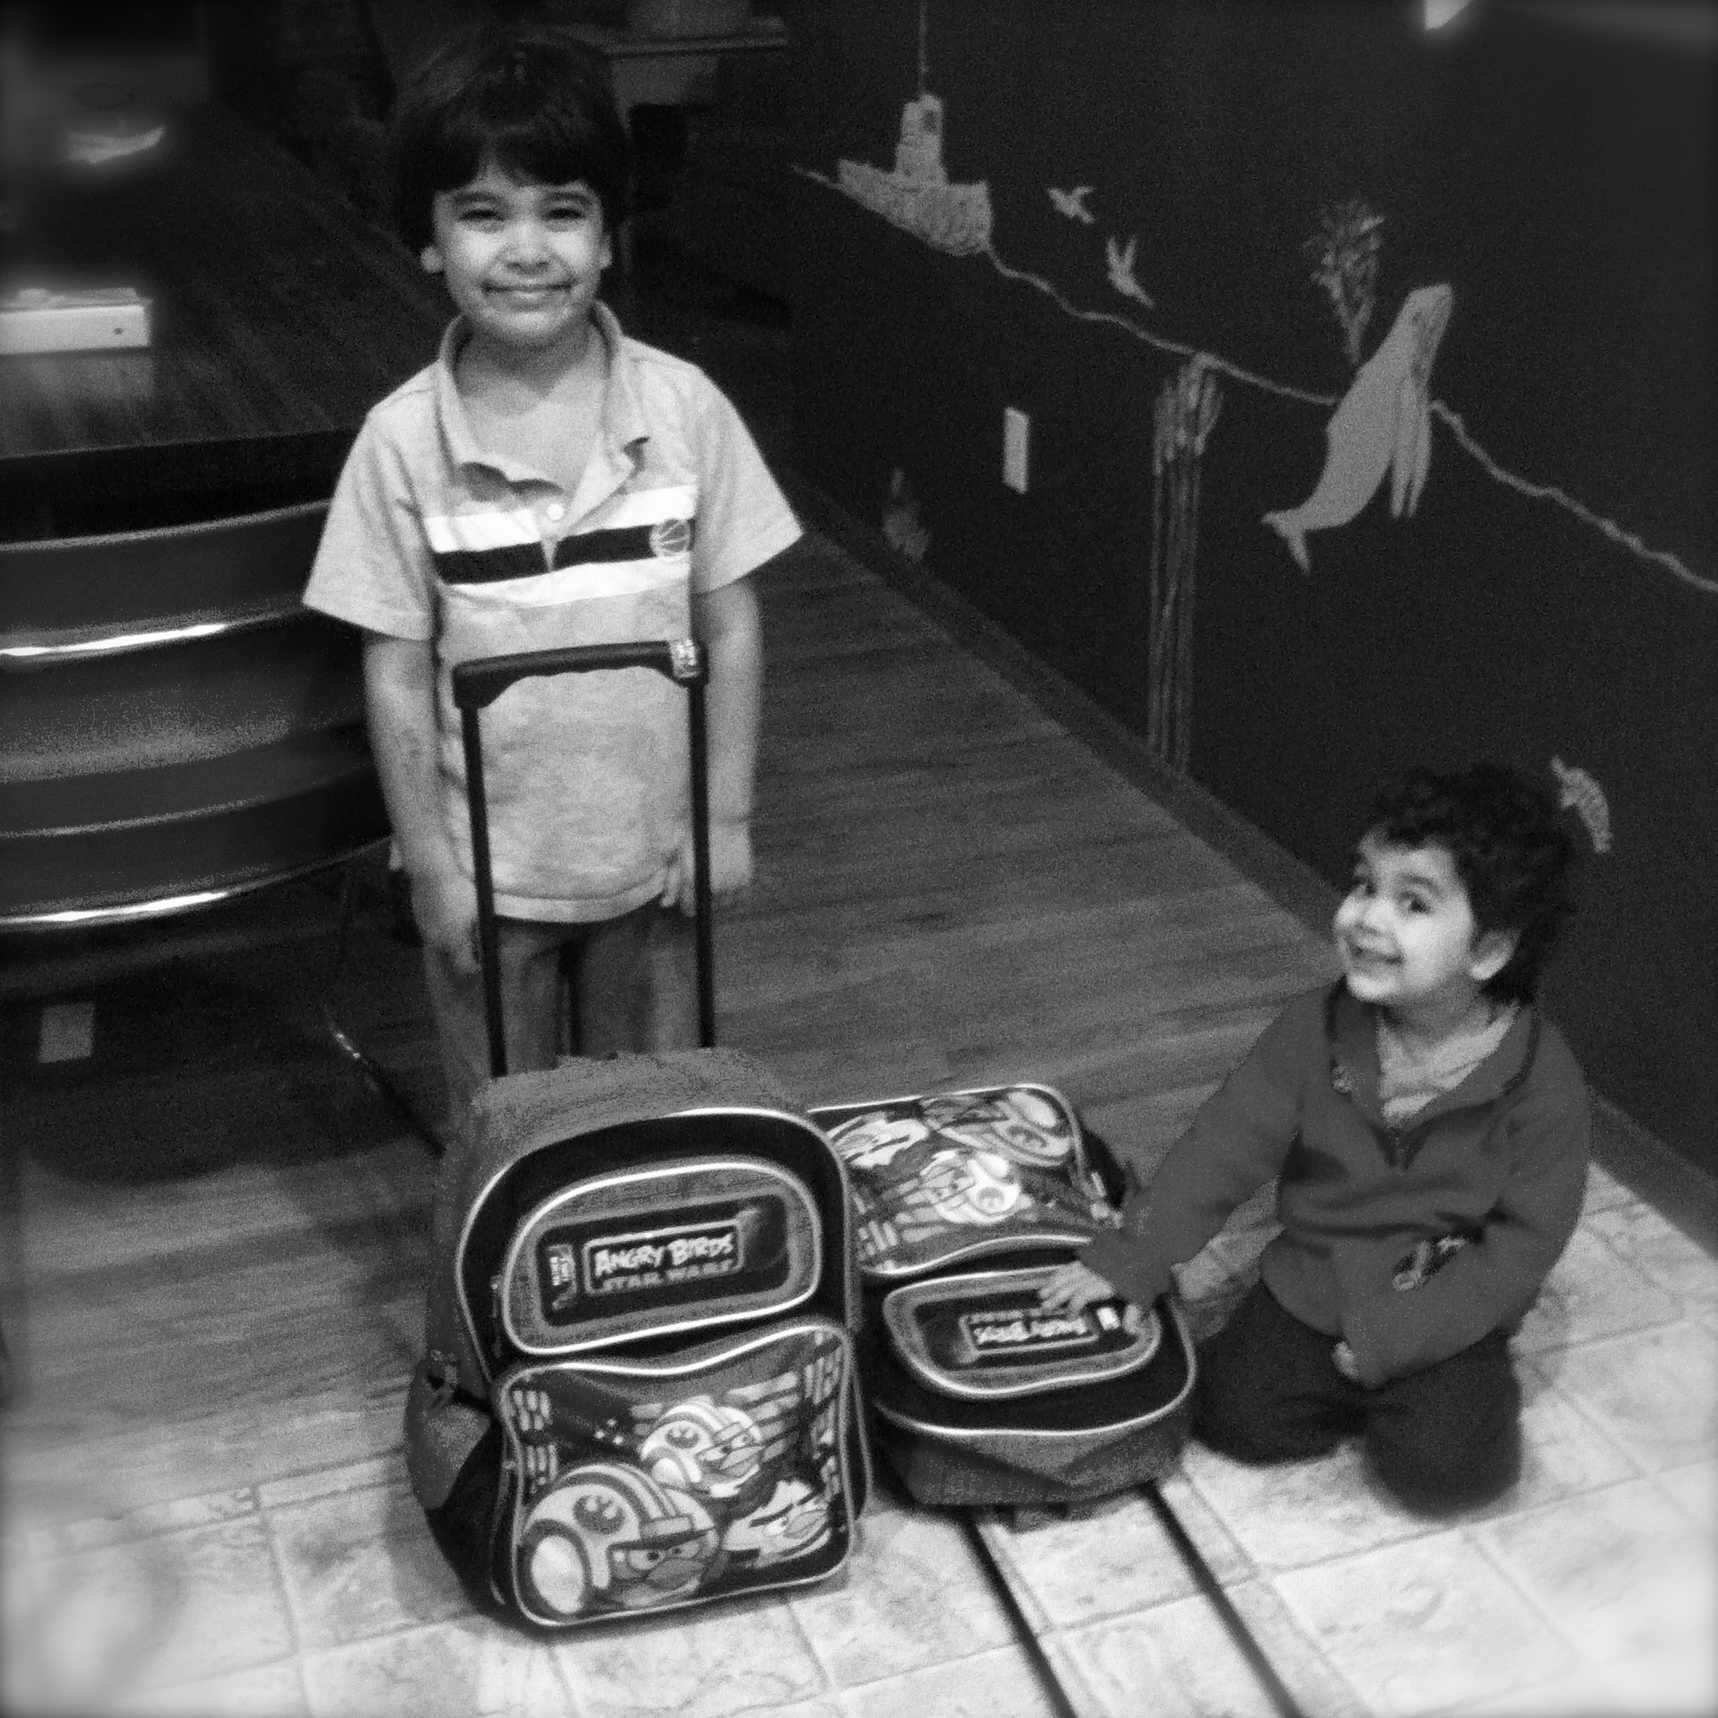 Air travel with kids: rolling backpacks